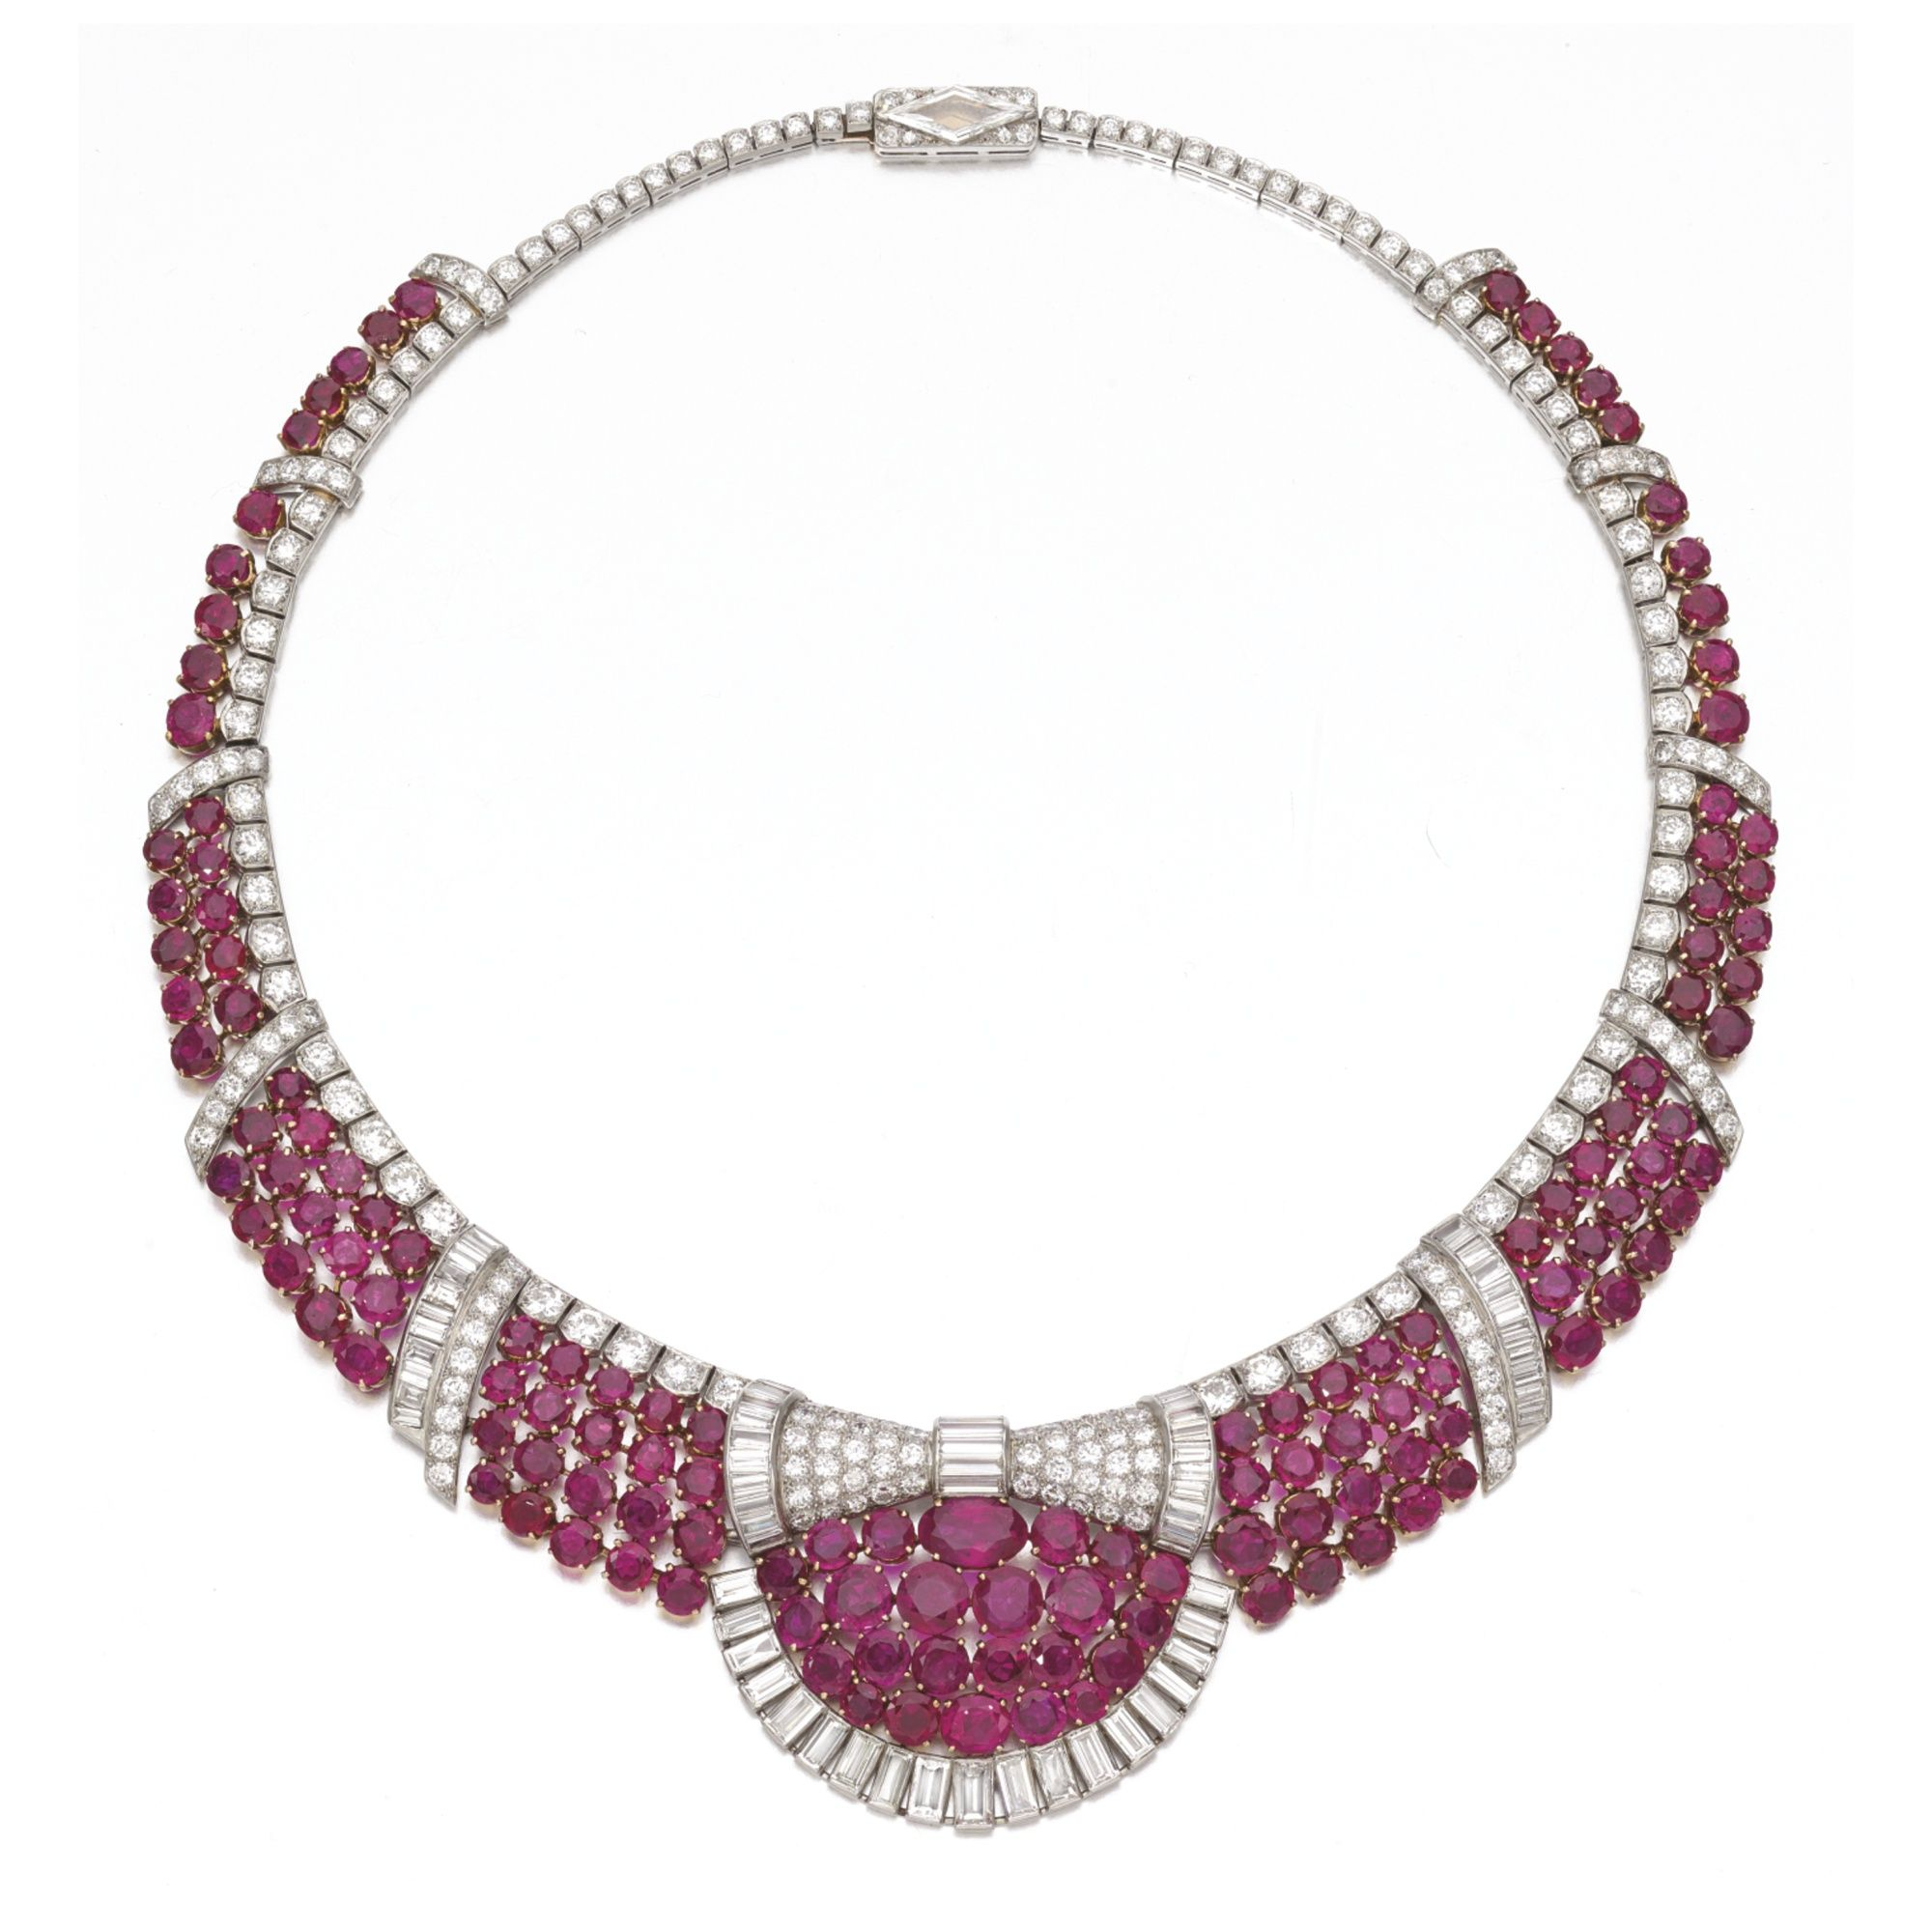 9c89afaa49c Attractive ruby and diamond necklace Of geometric open work design ...